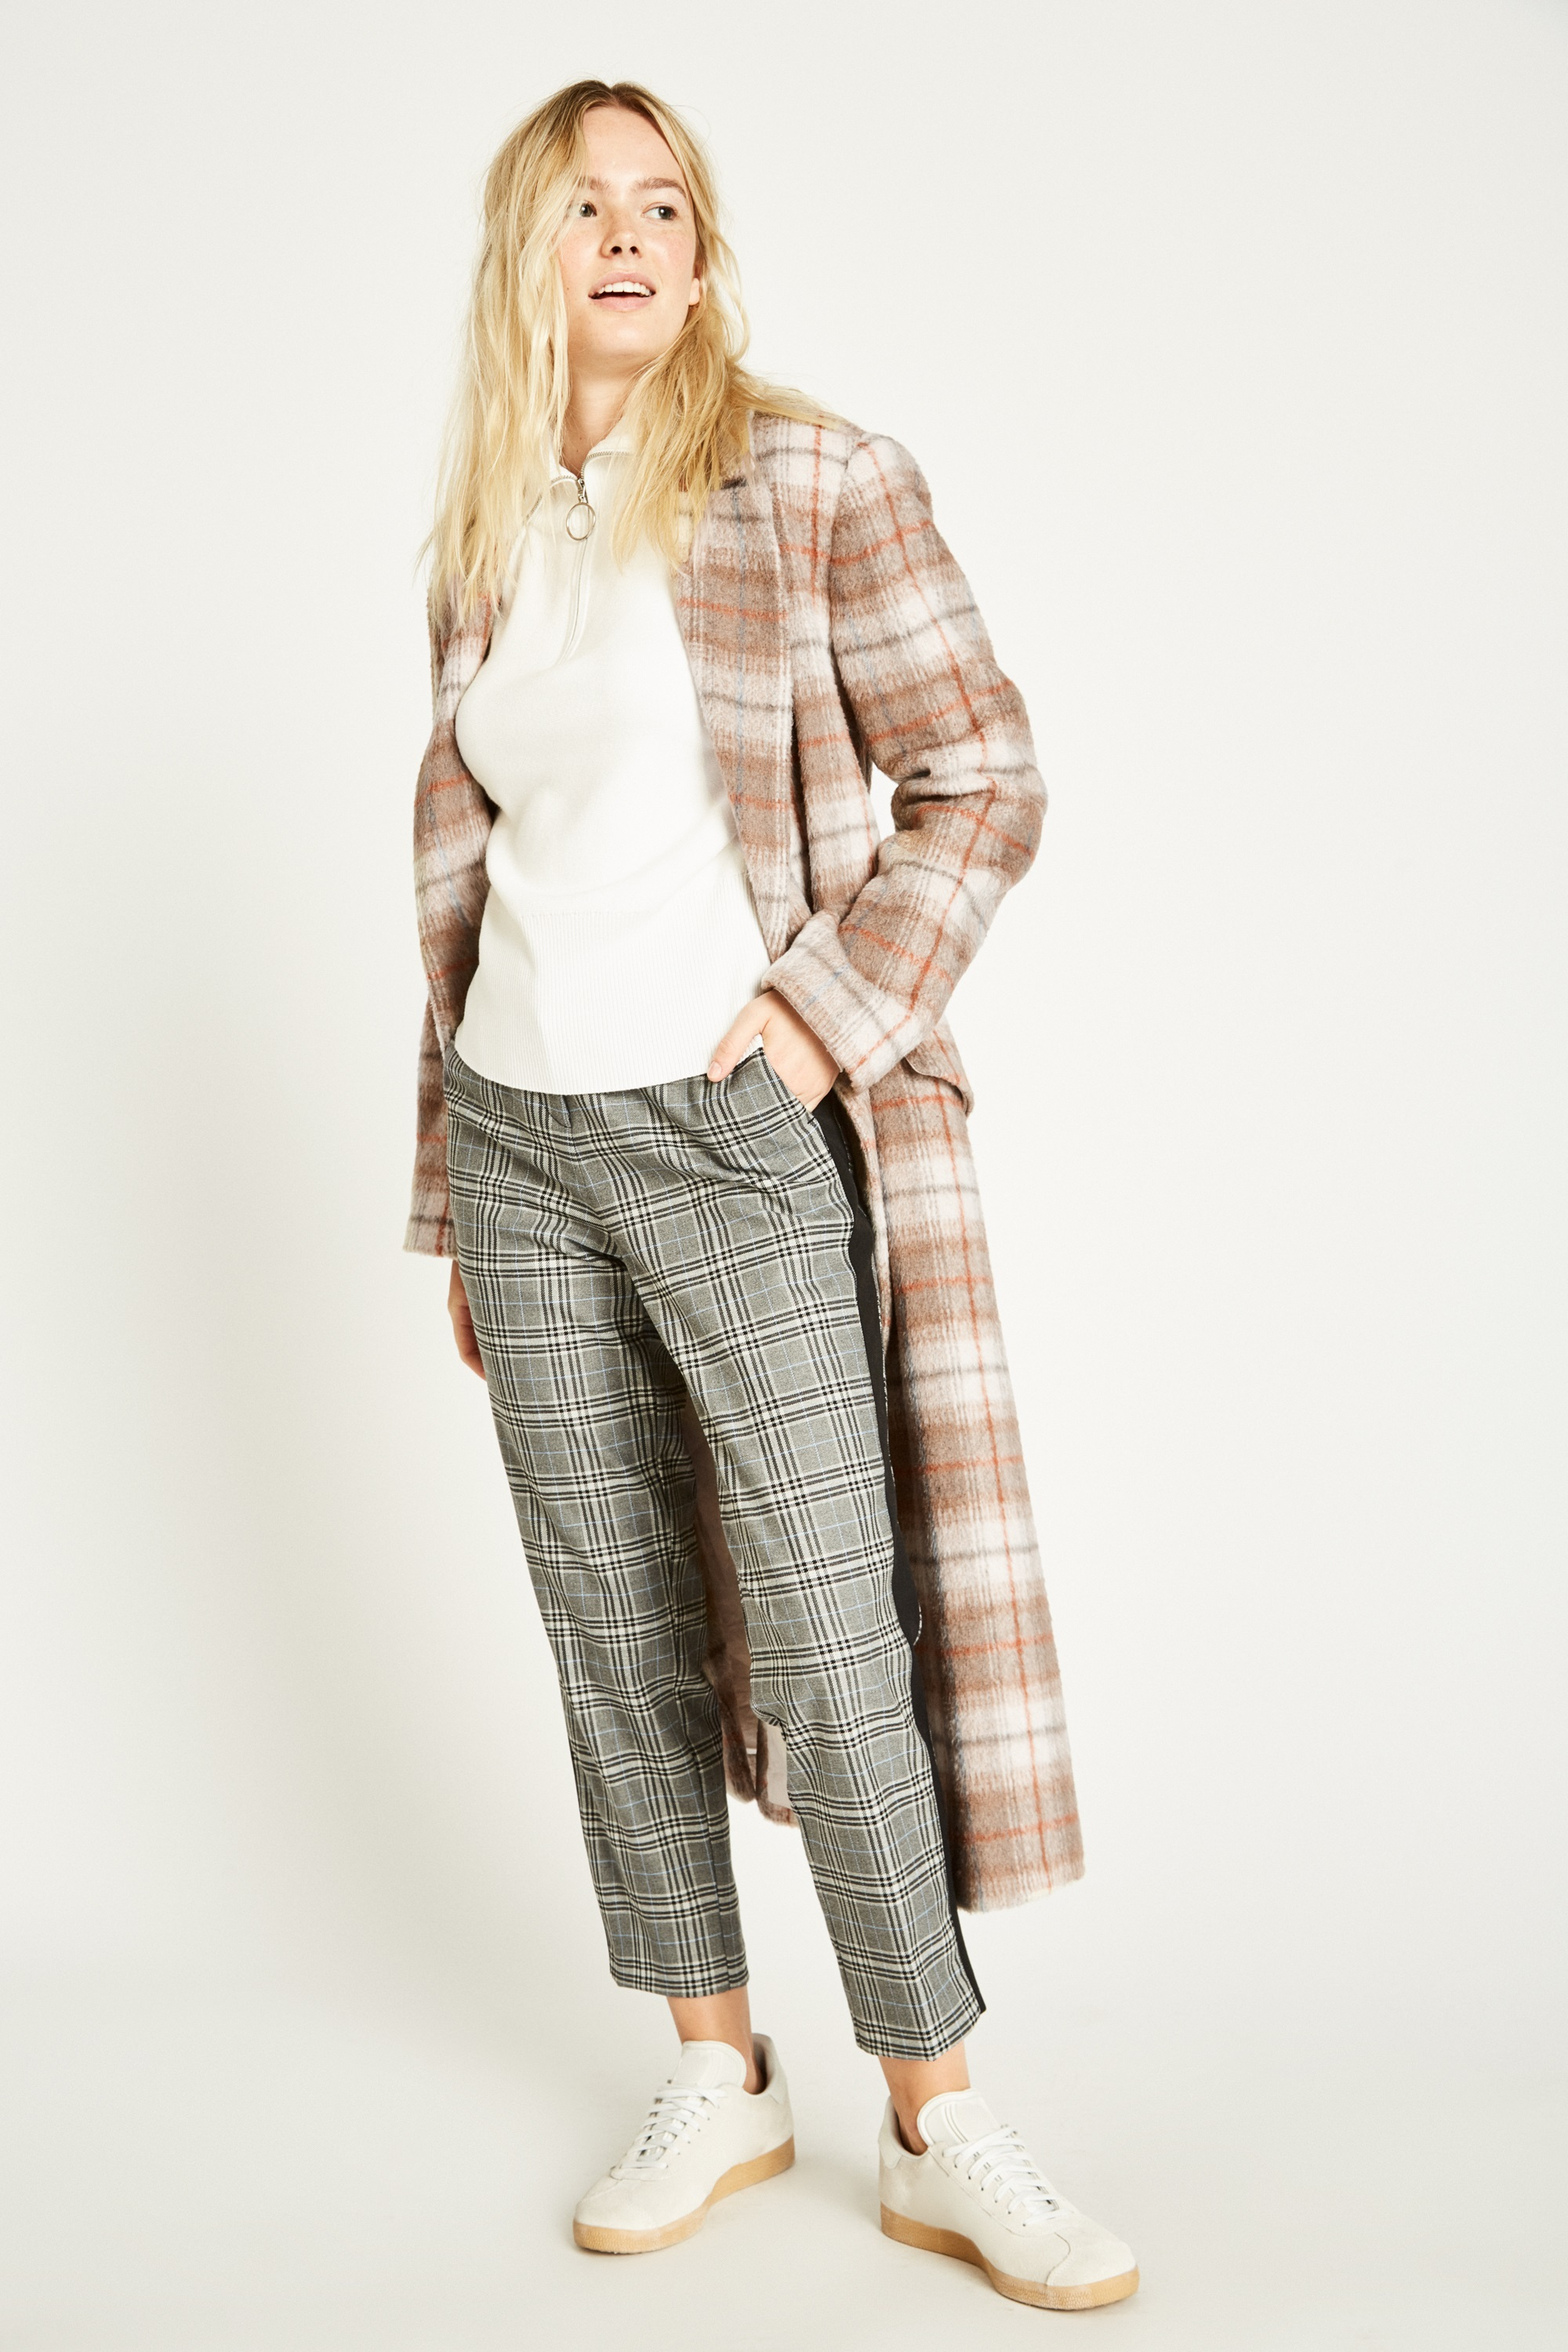 Jack Wills Blythe Long Checked Robe Womens Jacket Sand All Sizes